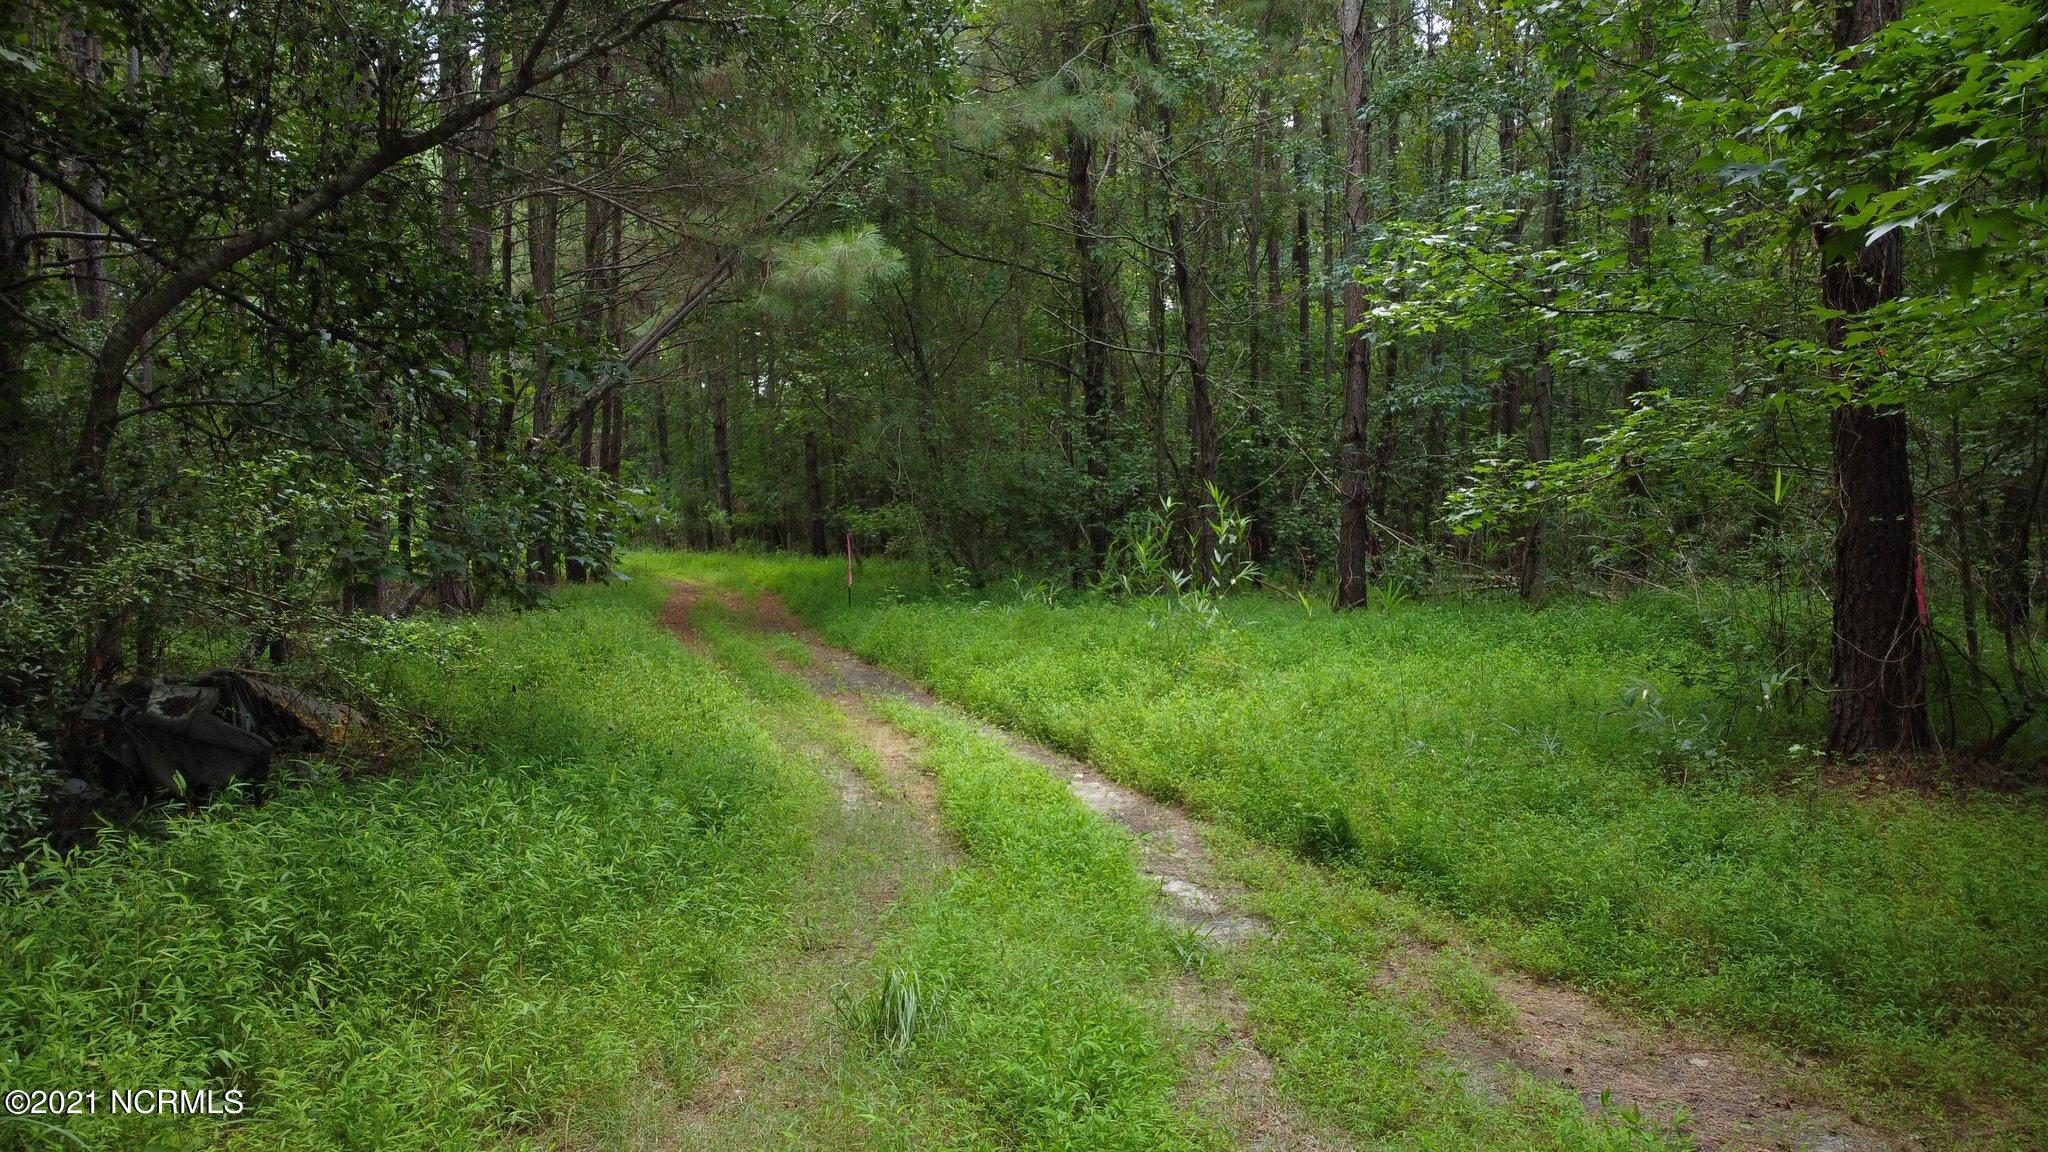 Here's your chance to build your dream home on this private 4.29 acre tract! This property provides ample space for a homestead with lots of room to grow. There's 78 feet of road frontage off Richlands Hwy with a long driveway leading back to the property. Power is already located on the property. The seller has done some clearing and marking of the property lines making it easy to walk the area. Come see this beautiful tract today!